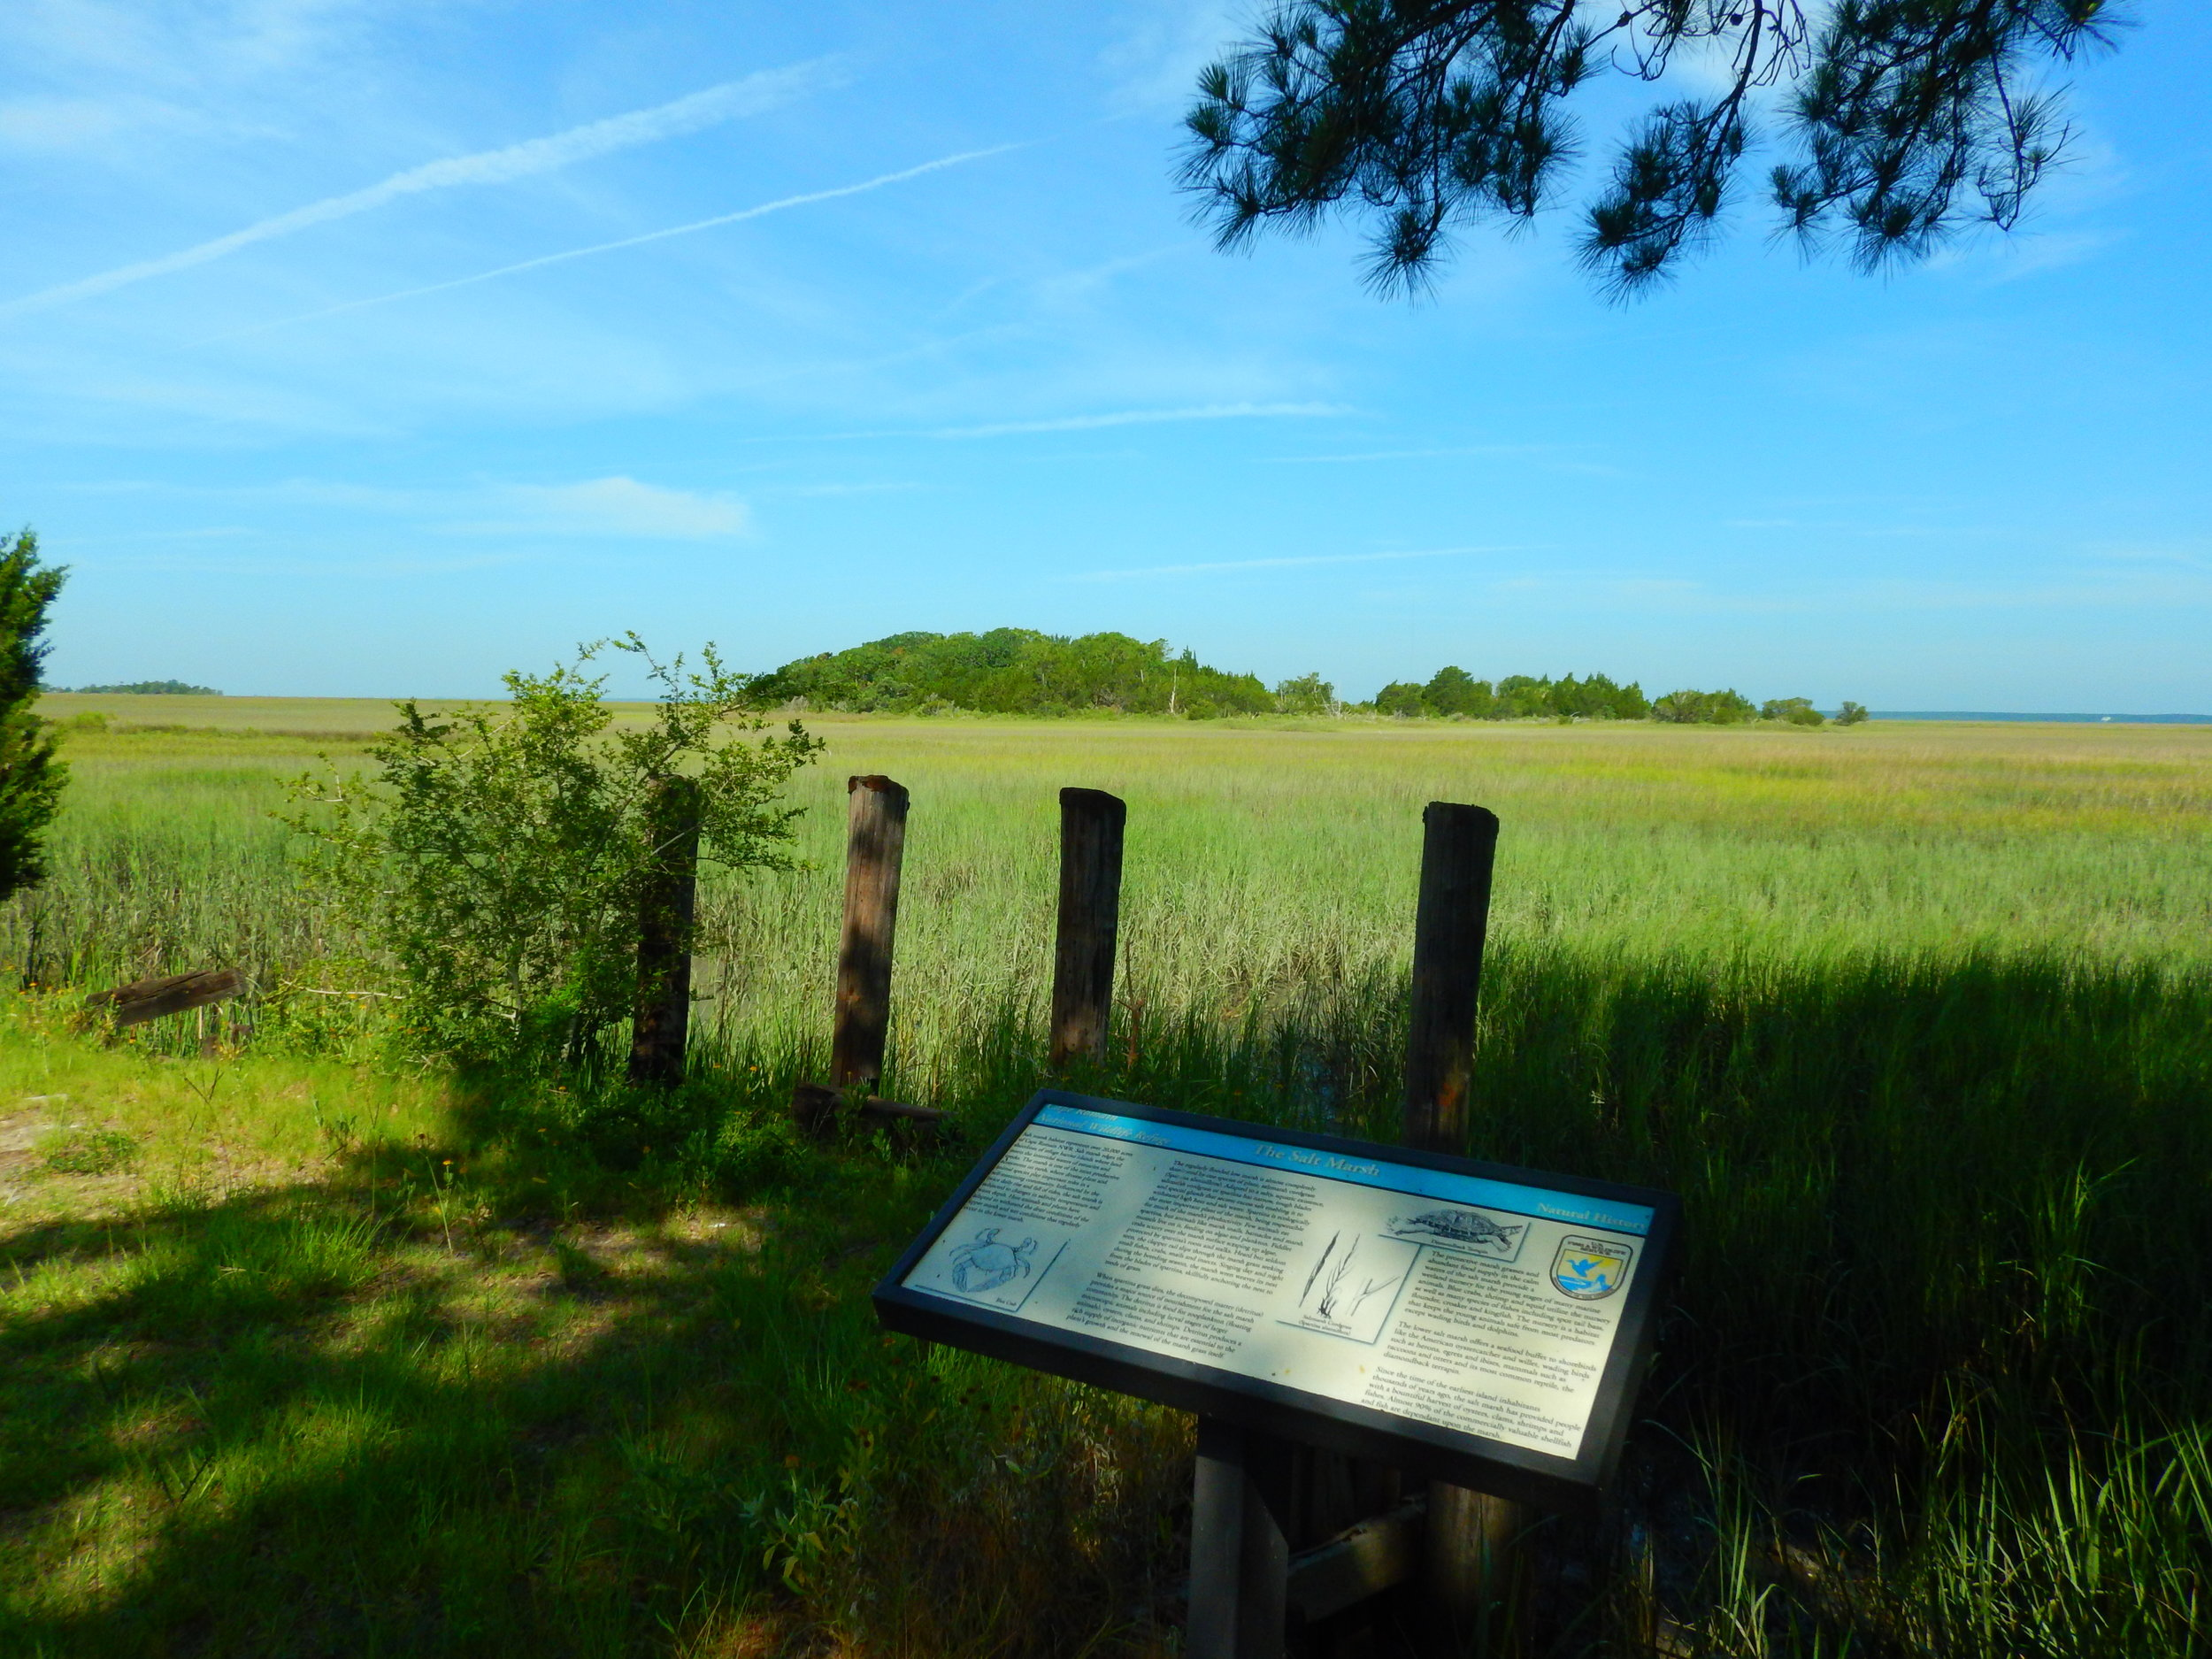 Interpretive signs along the trail explain the island's ecosystem  — Cape Romain National Wildlife Refuge is considered one of the most pristine areas on the East Coast.